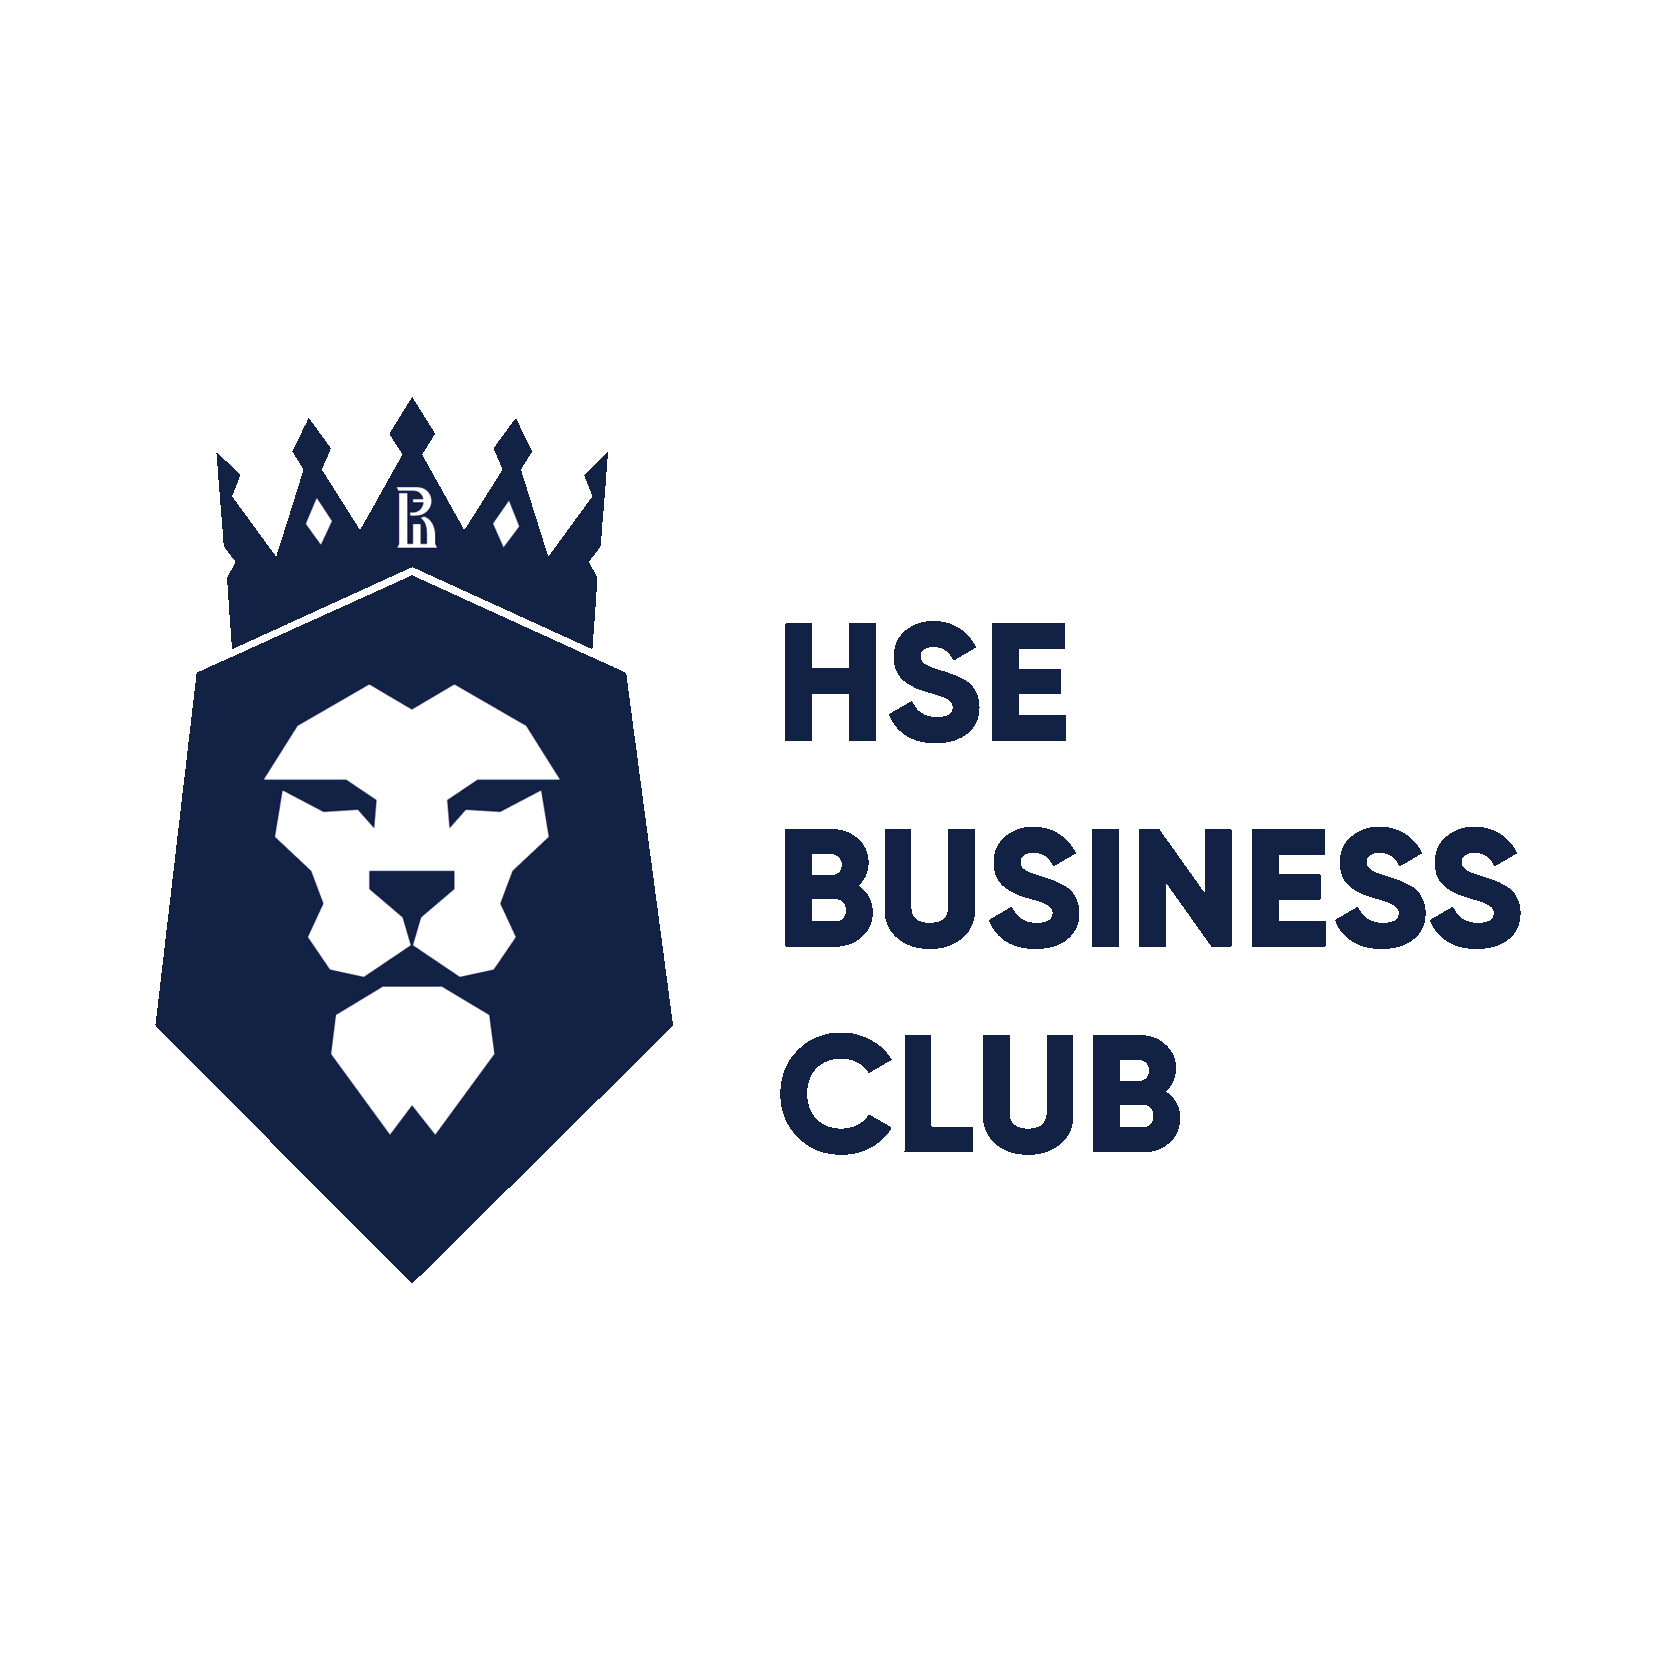 HSE Business Club